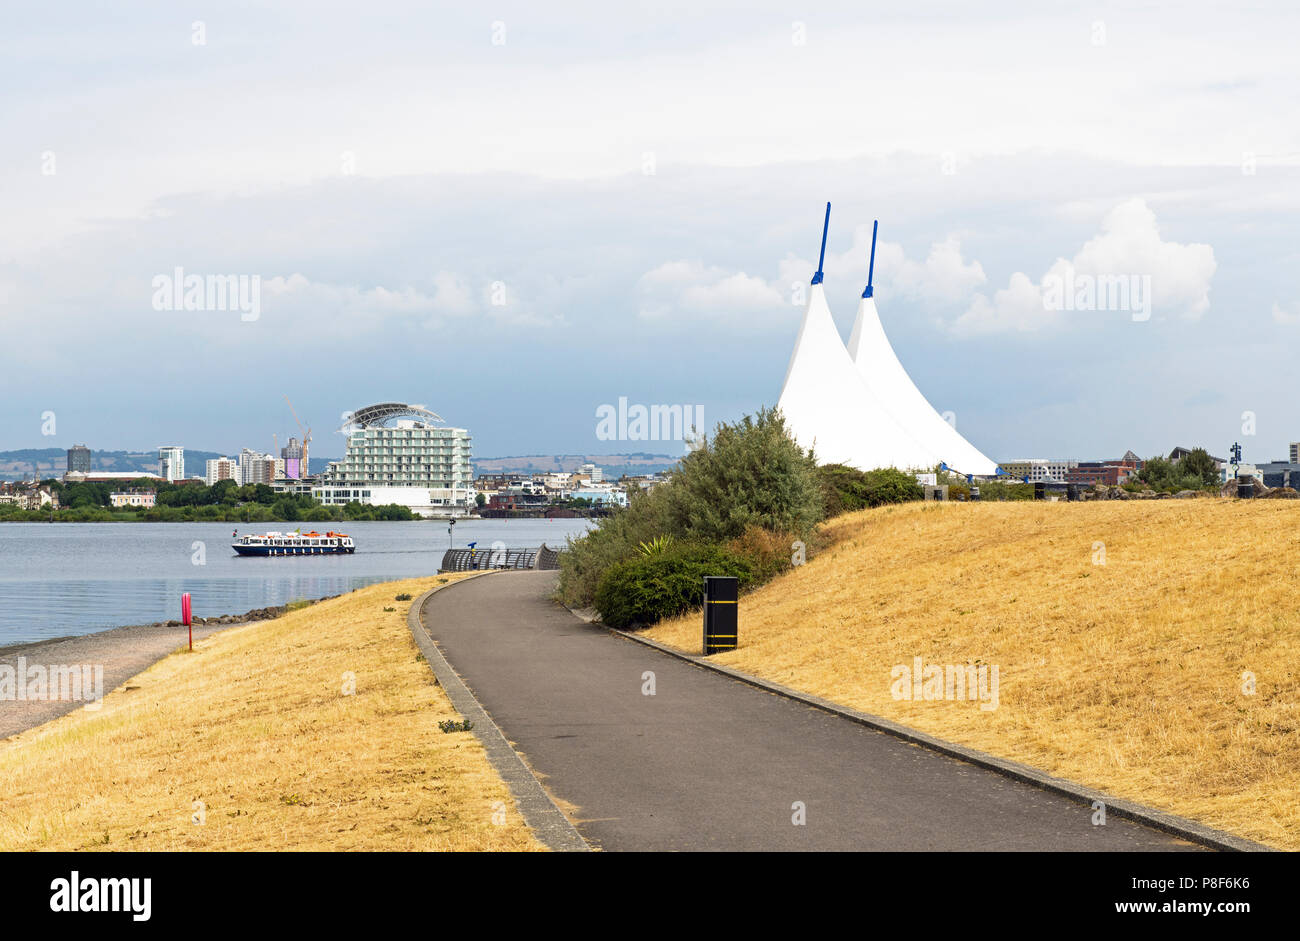 Cardiff Bay during long hot summer of 2018 - Stock Image